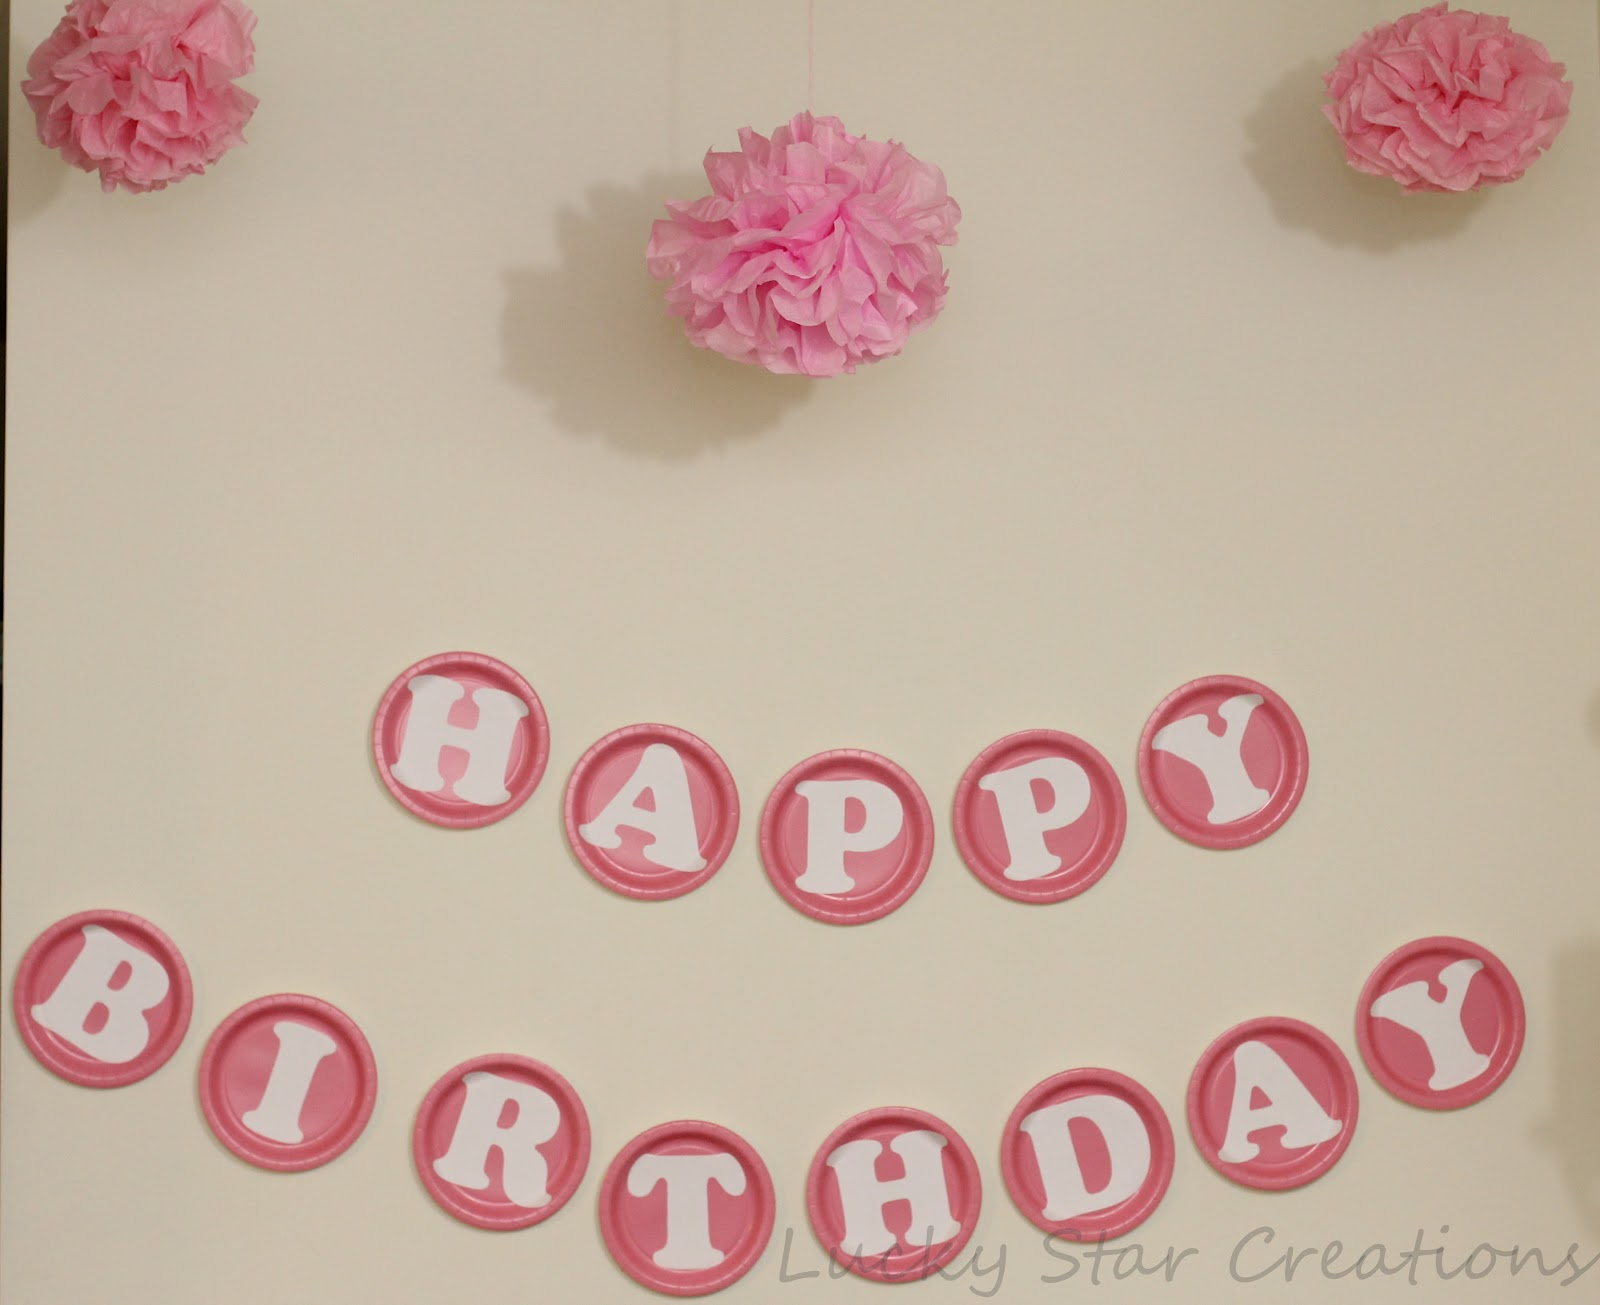 Lucky Star Creations: The Blog: Baby\'s 1st Birthday Party